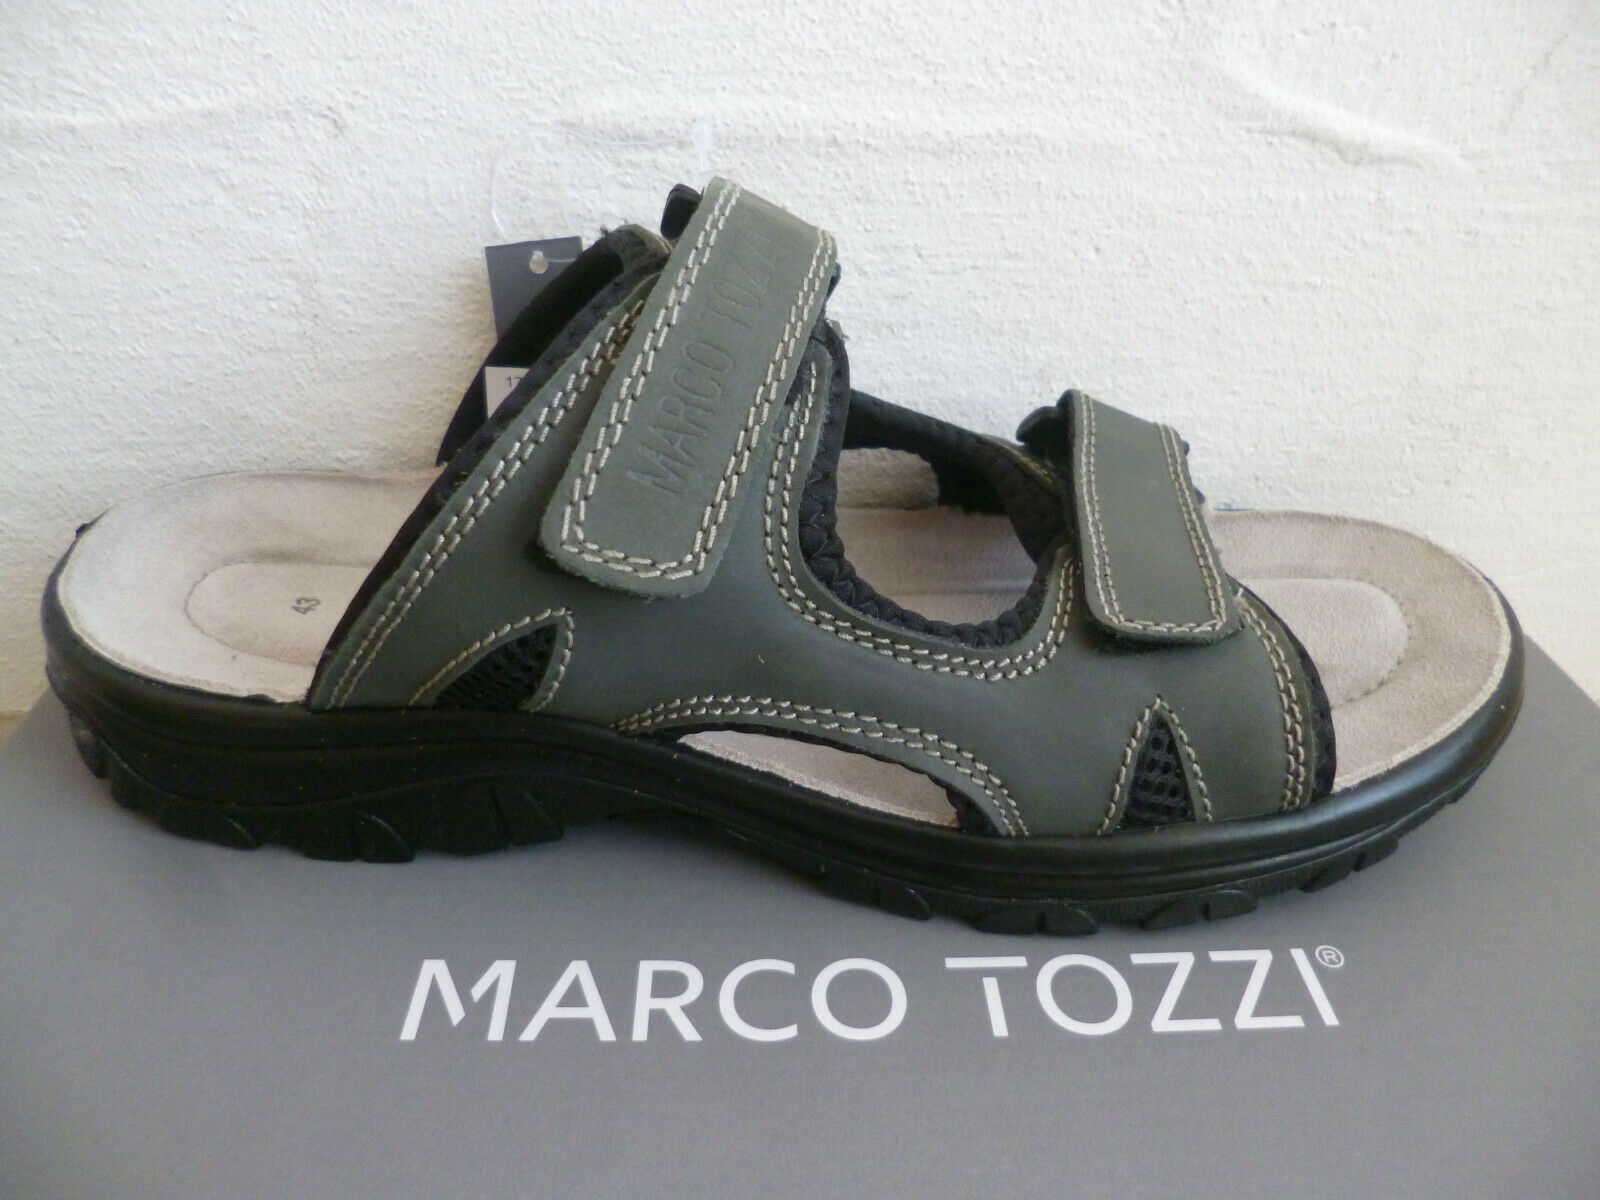 Marco tozzi mens slippers slippers clogs Genuine Leather 17400 Grey NEW